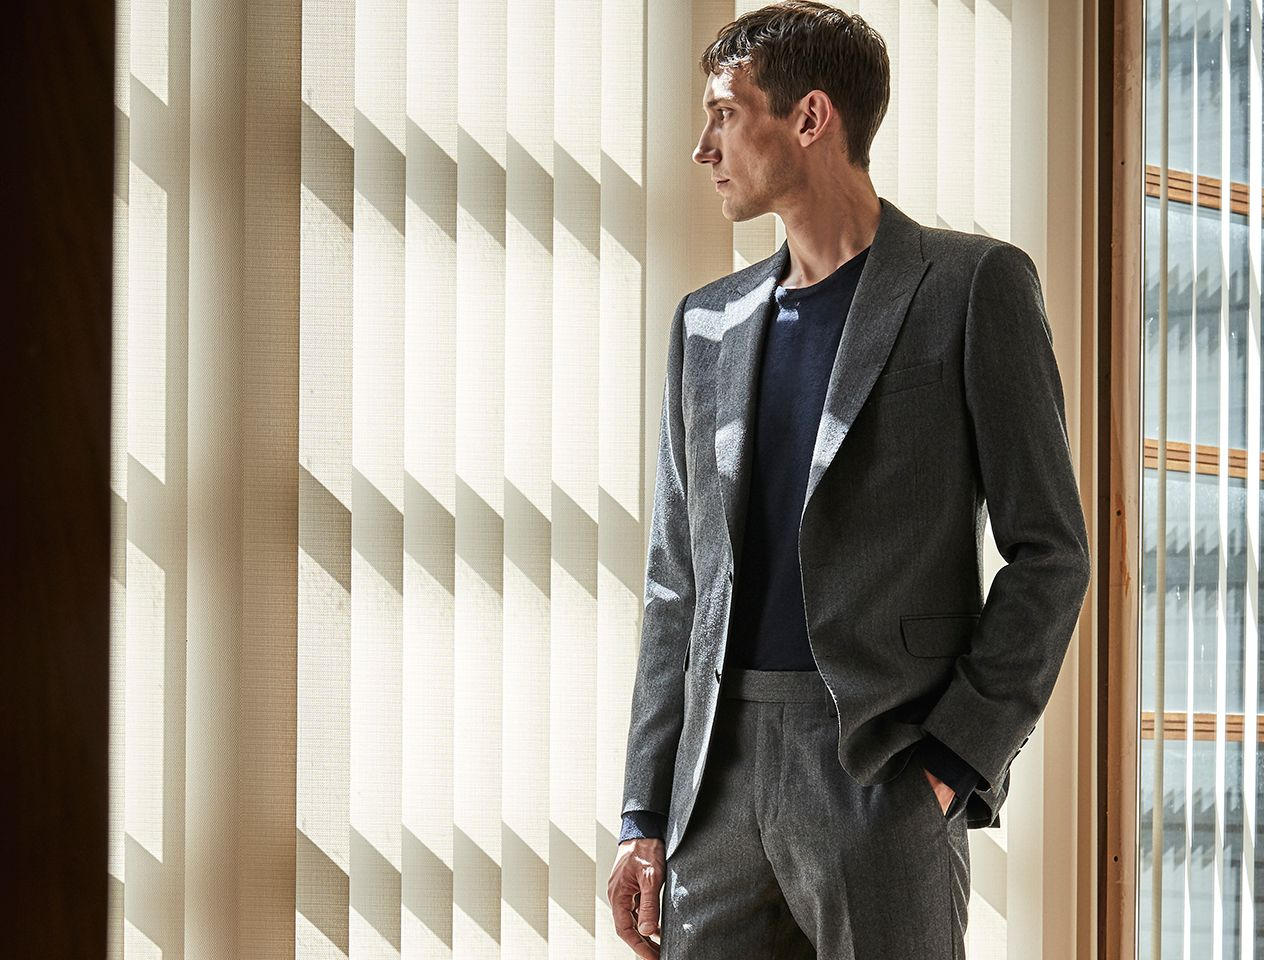 A model wearing a suit - one of the key pieces that make up a men's capsule wardrobe